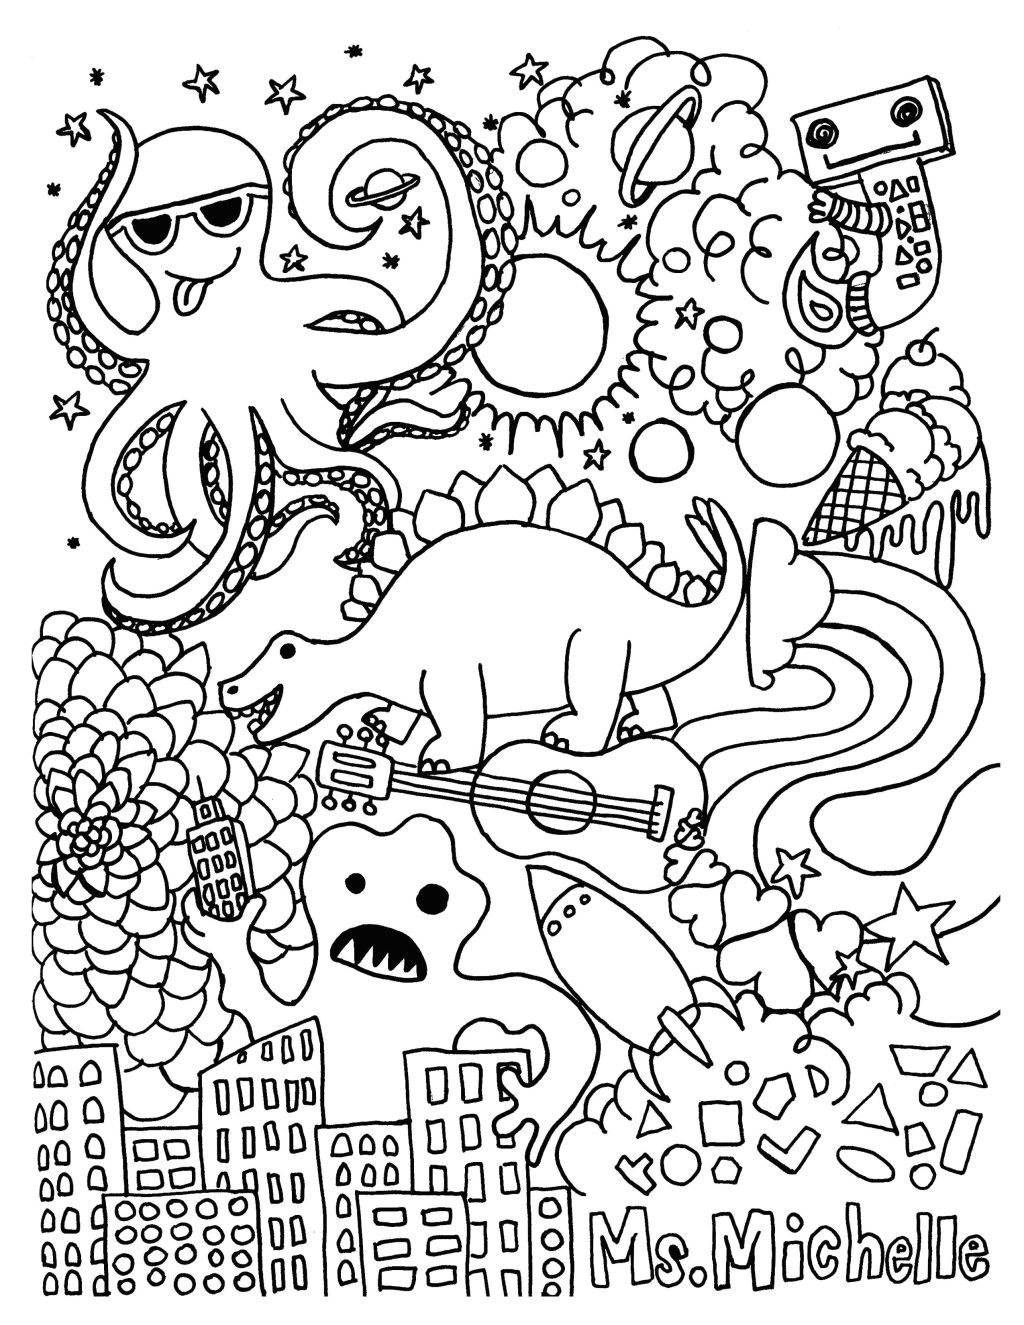 coloring ideas page best of onlineing book for kids brainstormchi com fantastic online girls picture inspirations stunning 1024x1325 jpg